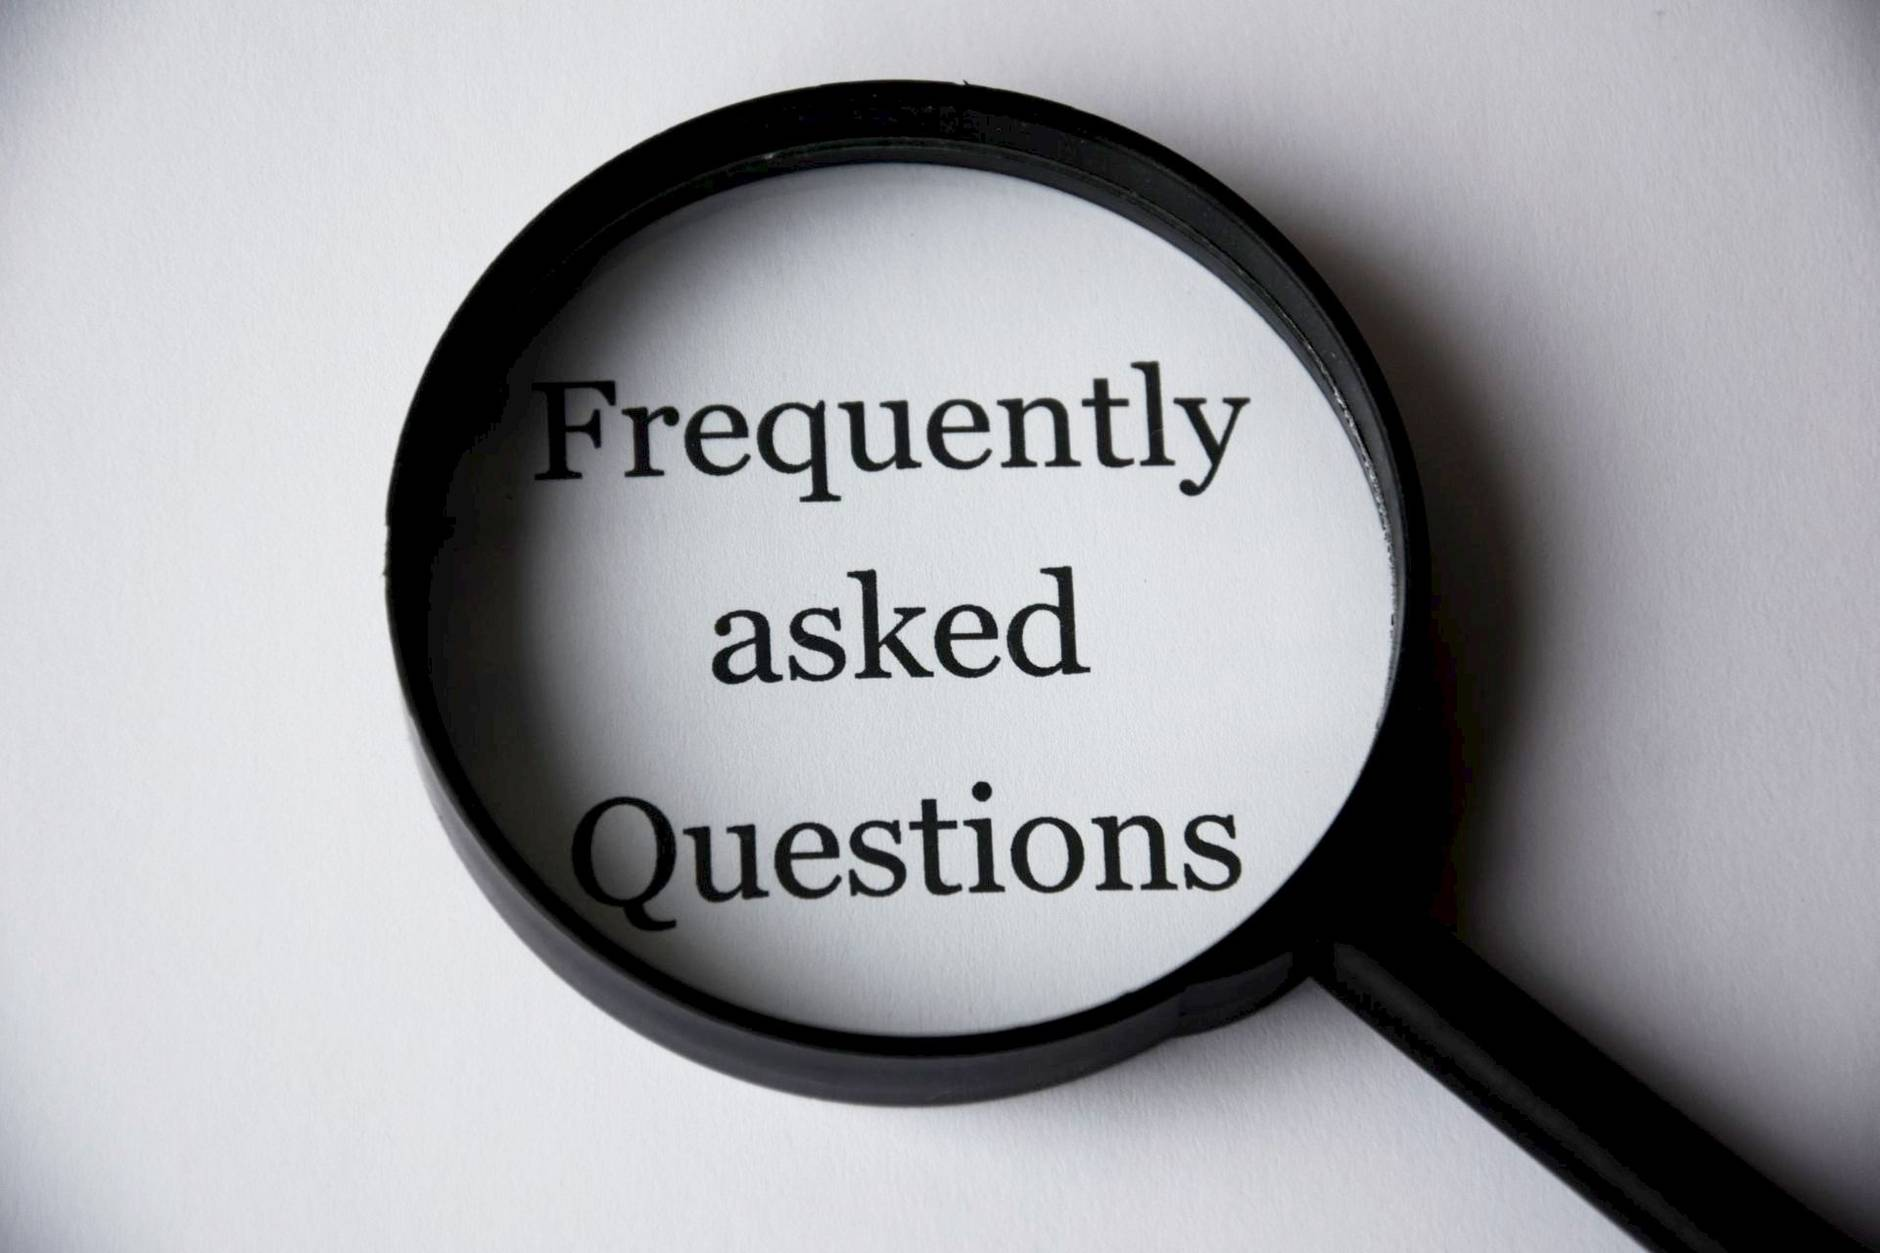 technical writing Azure frequently asked questions with magnifying glass